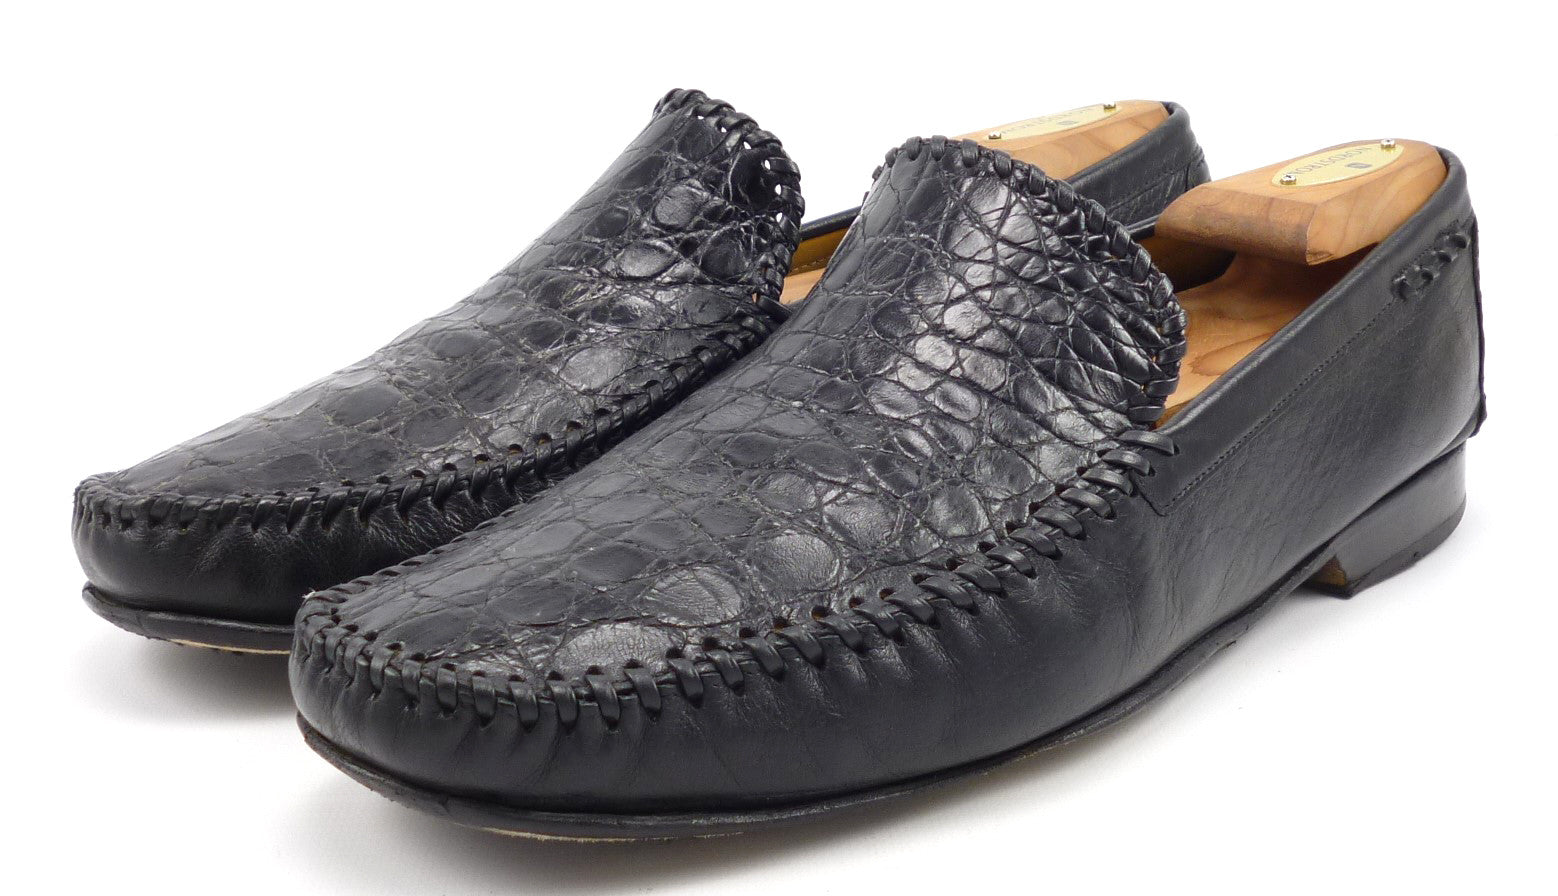 405c9618838fc Mezlan Mens Shoes 10.5 Comino Leather Crocodile Loafers ...